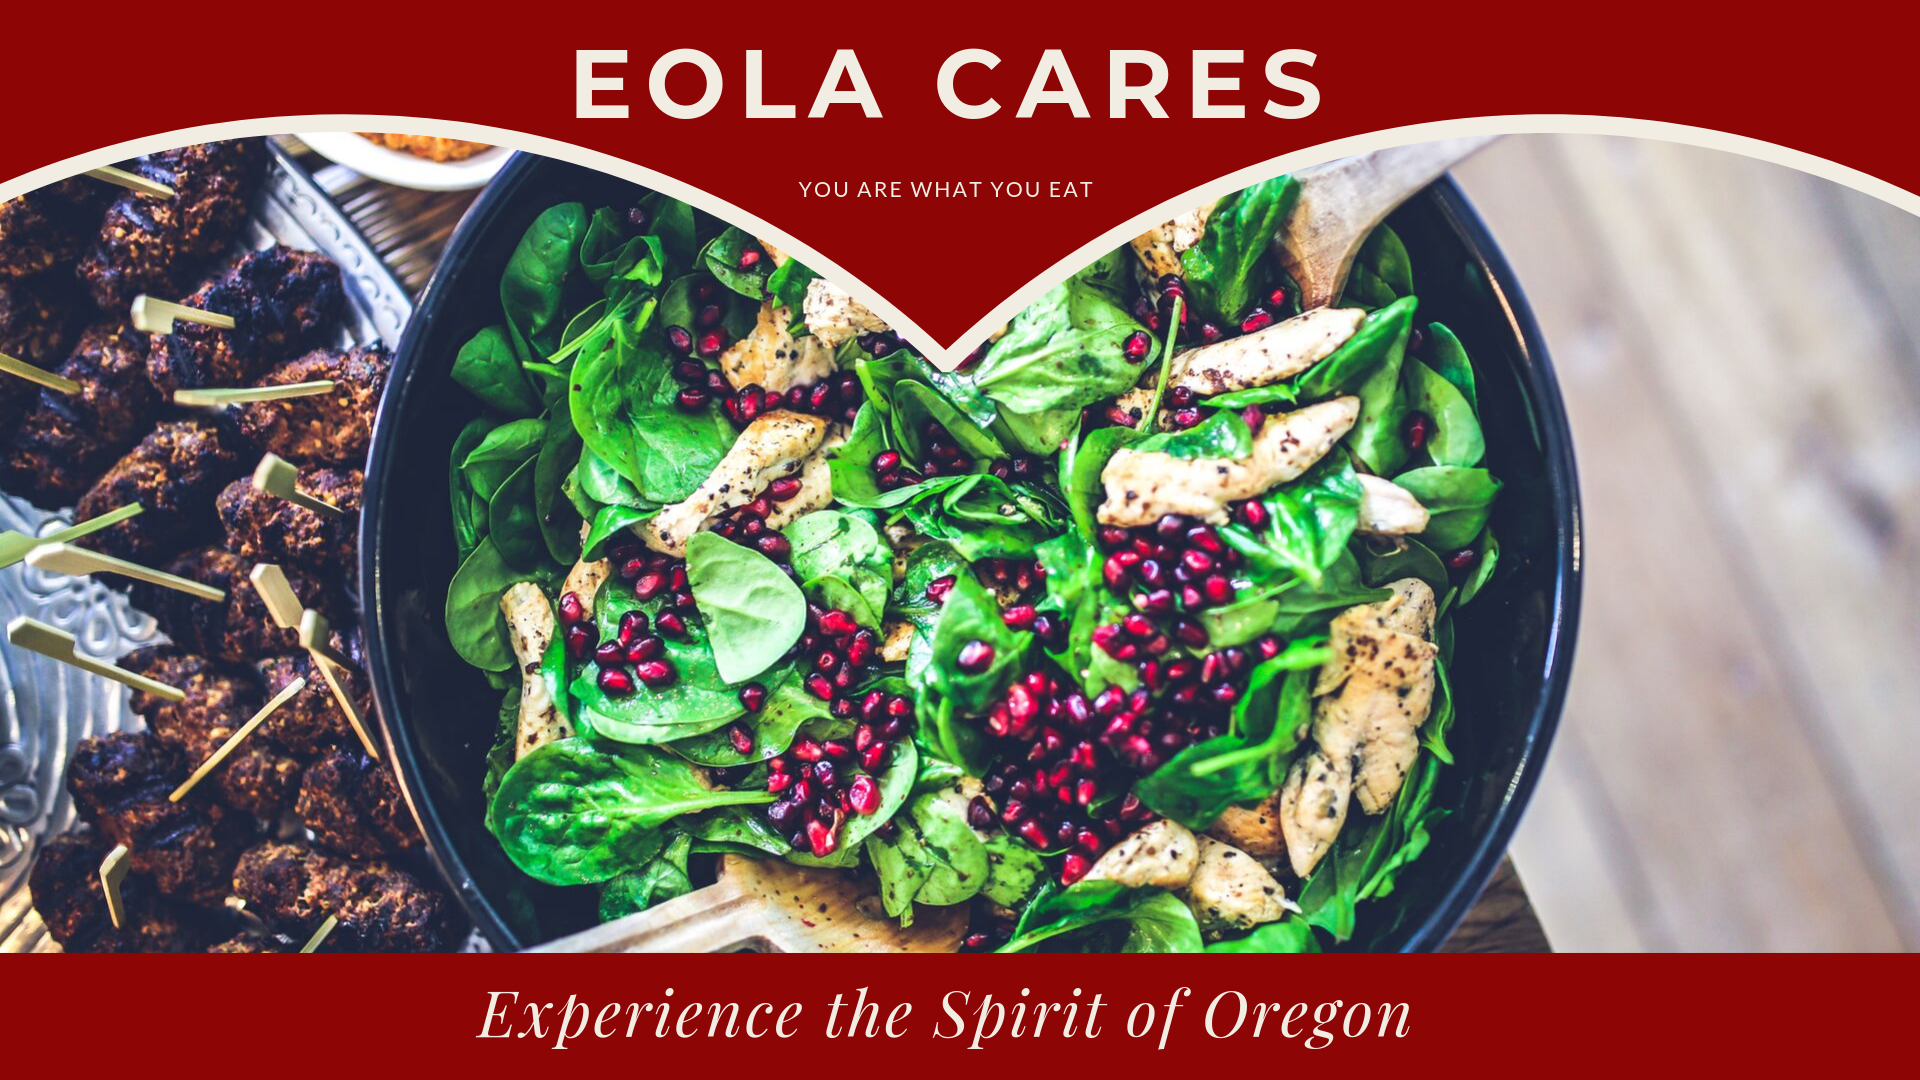 Ehwc Ofb Spirit Of Oregon Web Banner Eola Hills